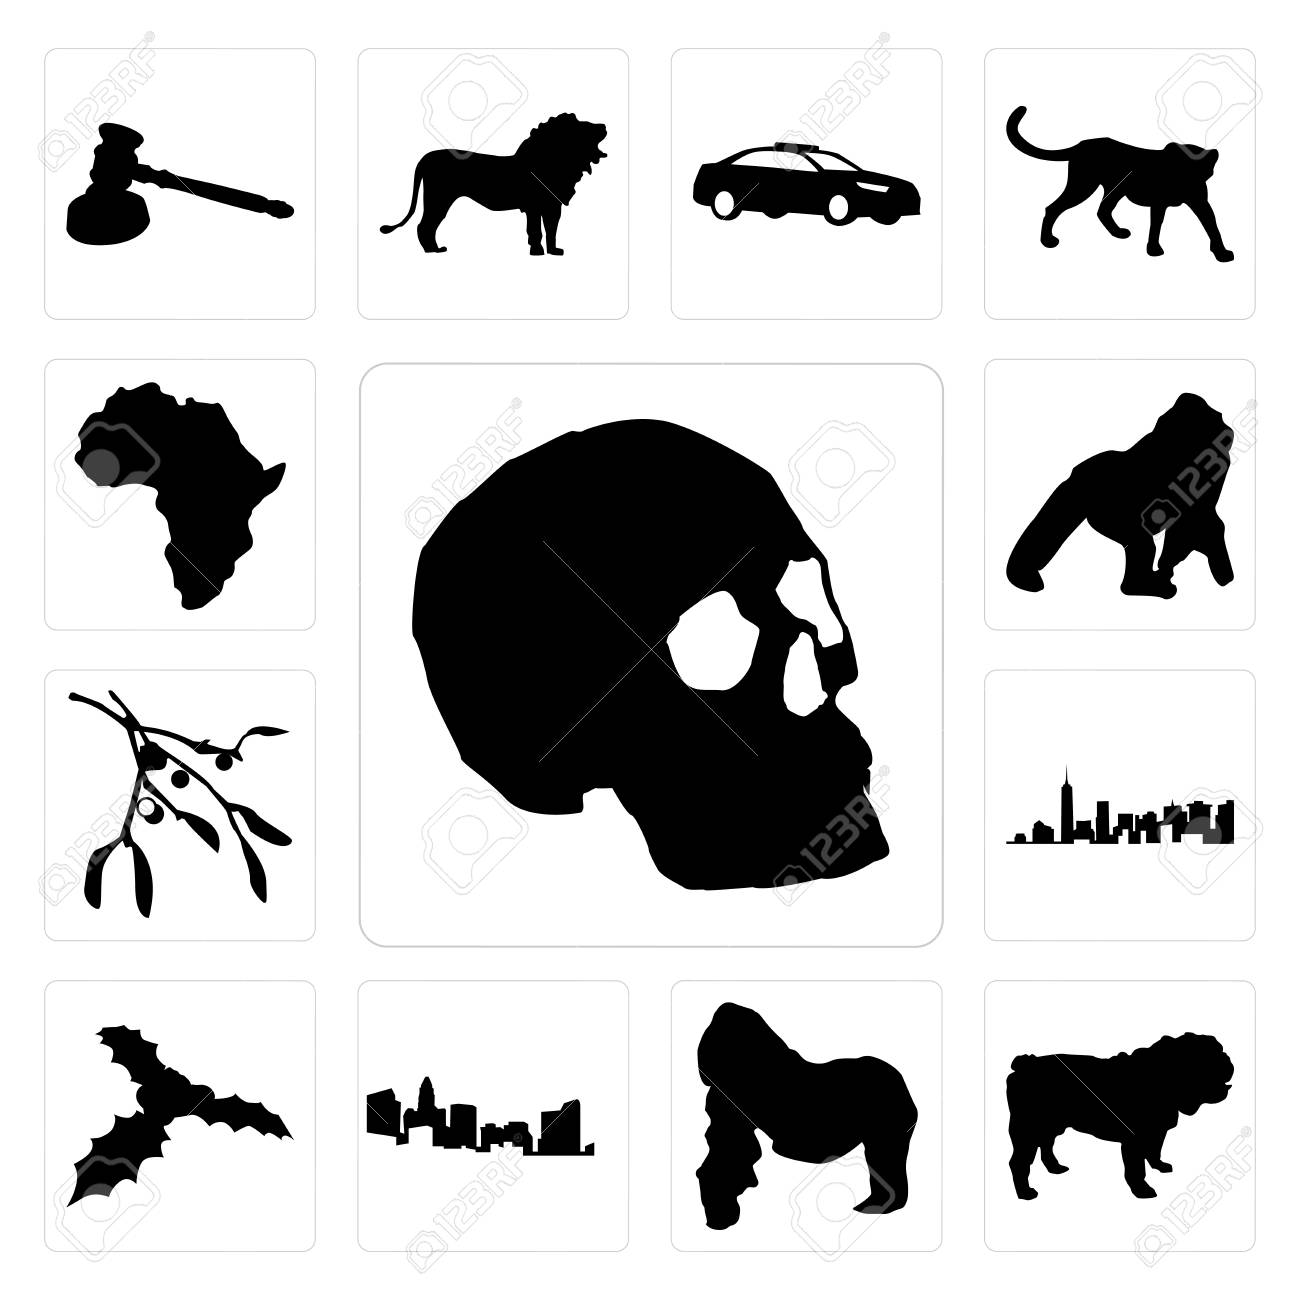 334dd95c5b0e1 Set Of 13 simple editable icons such as skull outline on white background